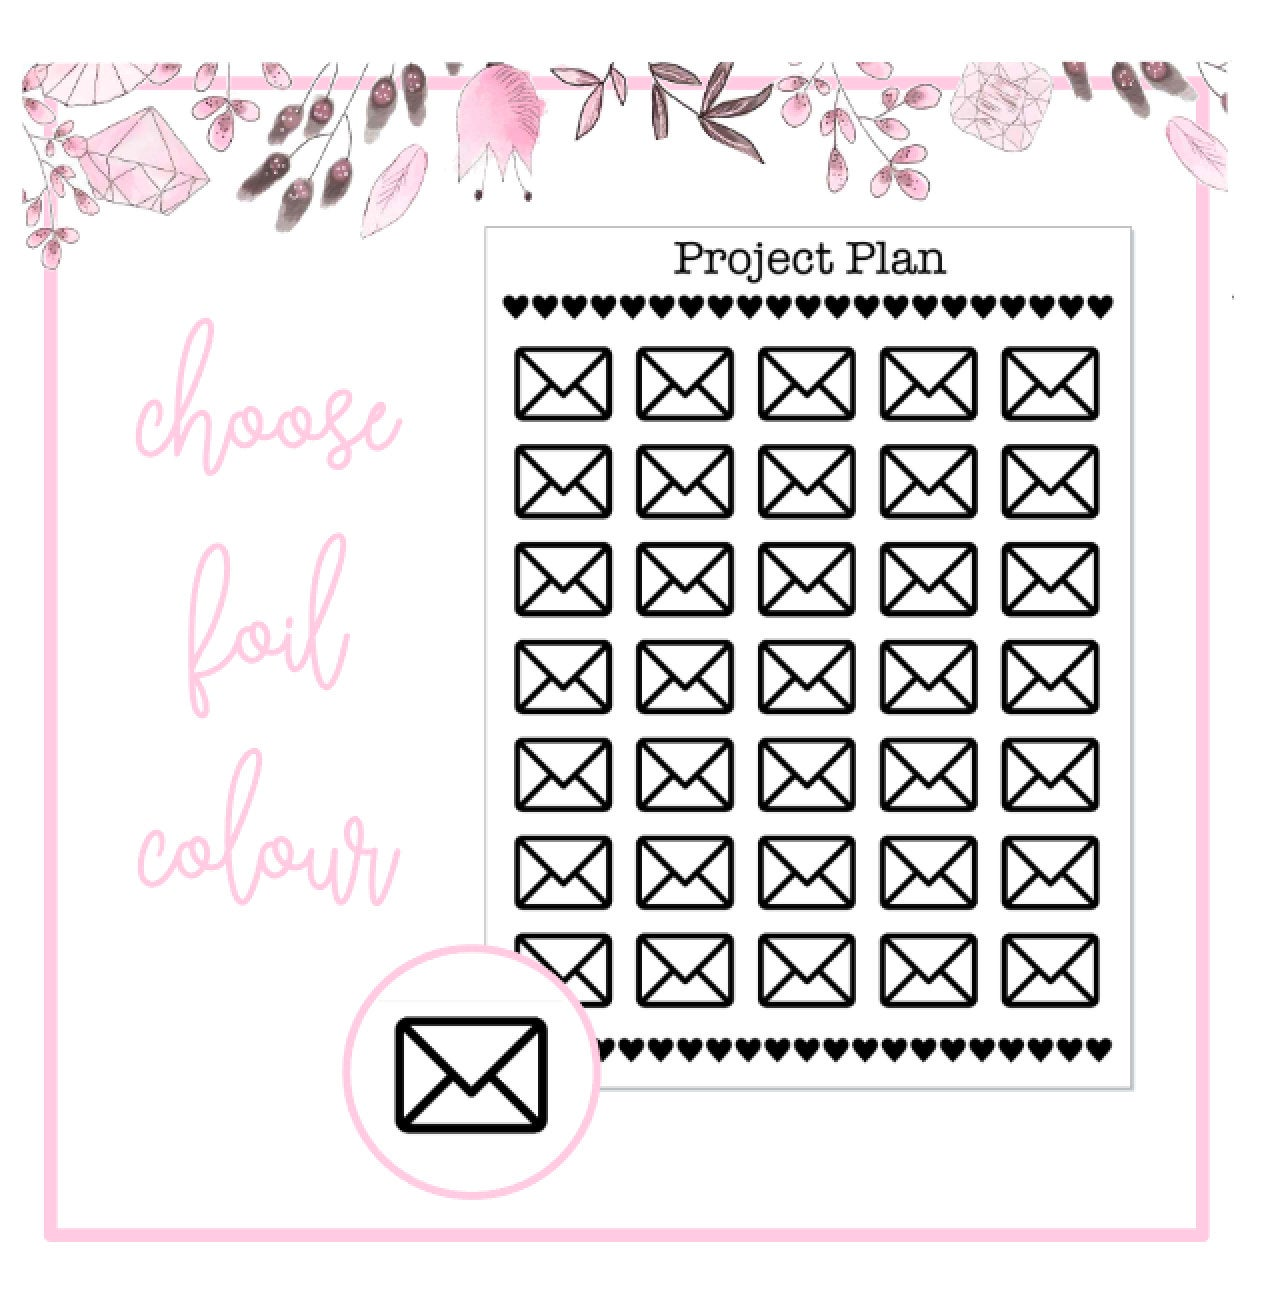 Foil Envelope/Happy Mail Icon Planner Stickers